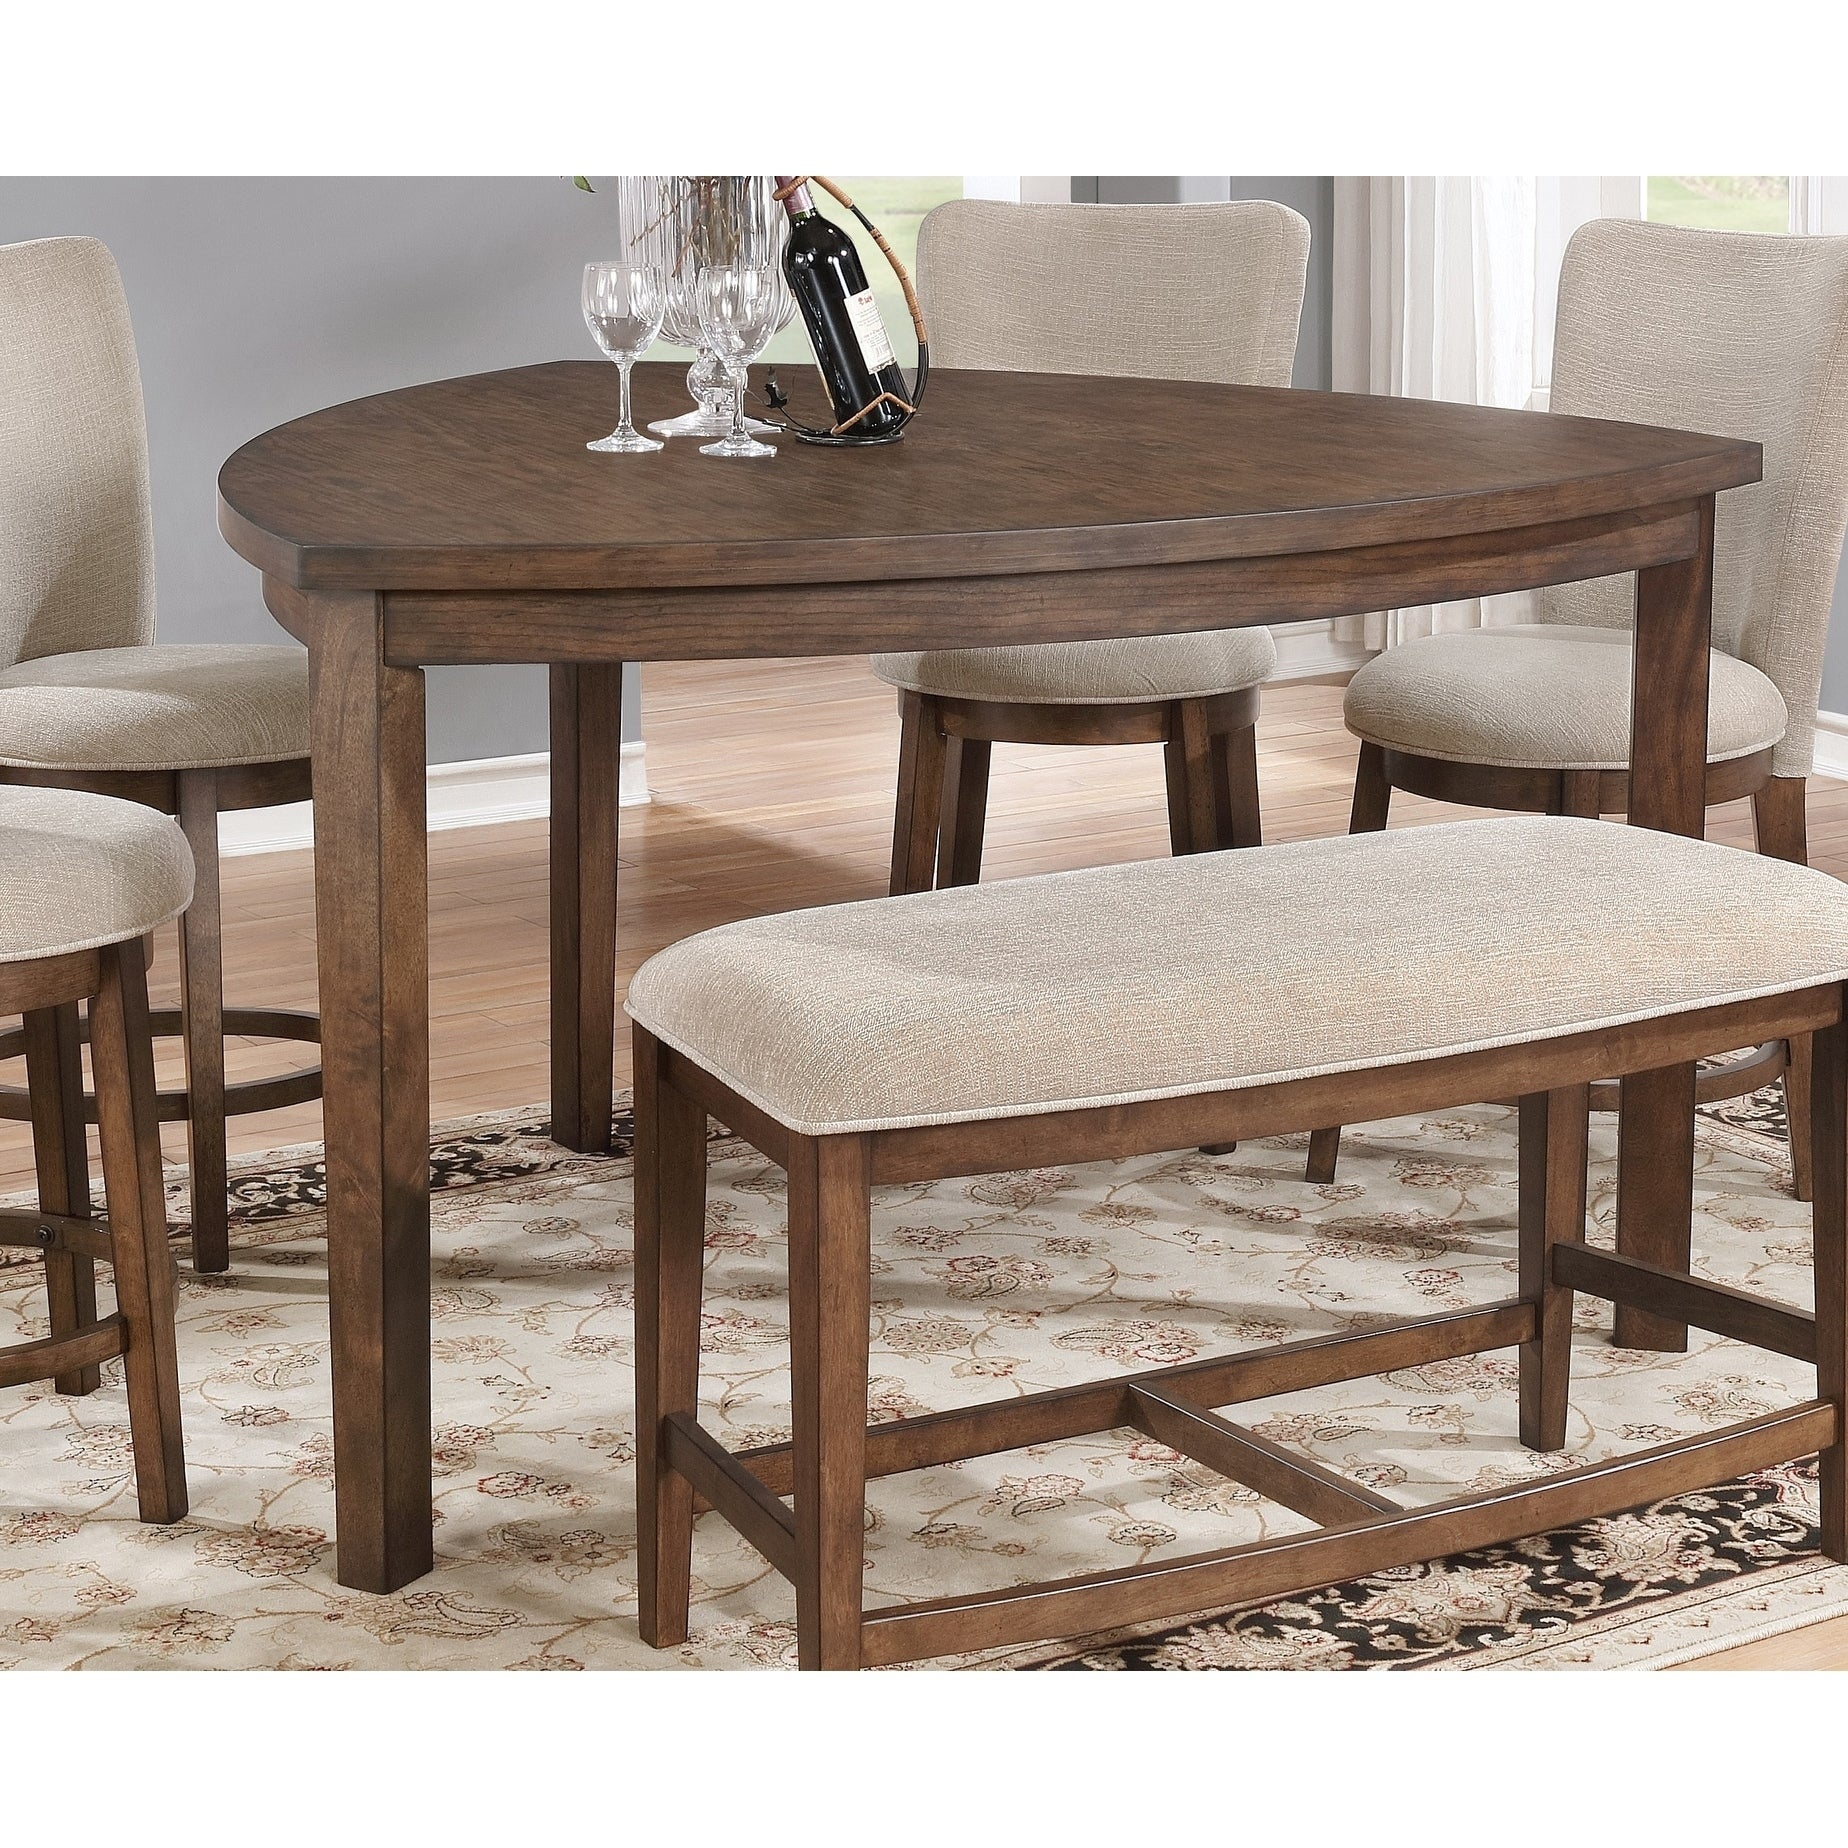 Buy Triangle Kitchen & Dining Room Tables line at Overstock